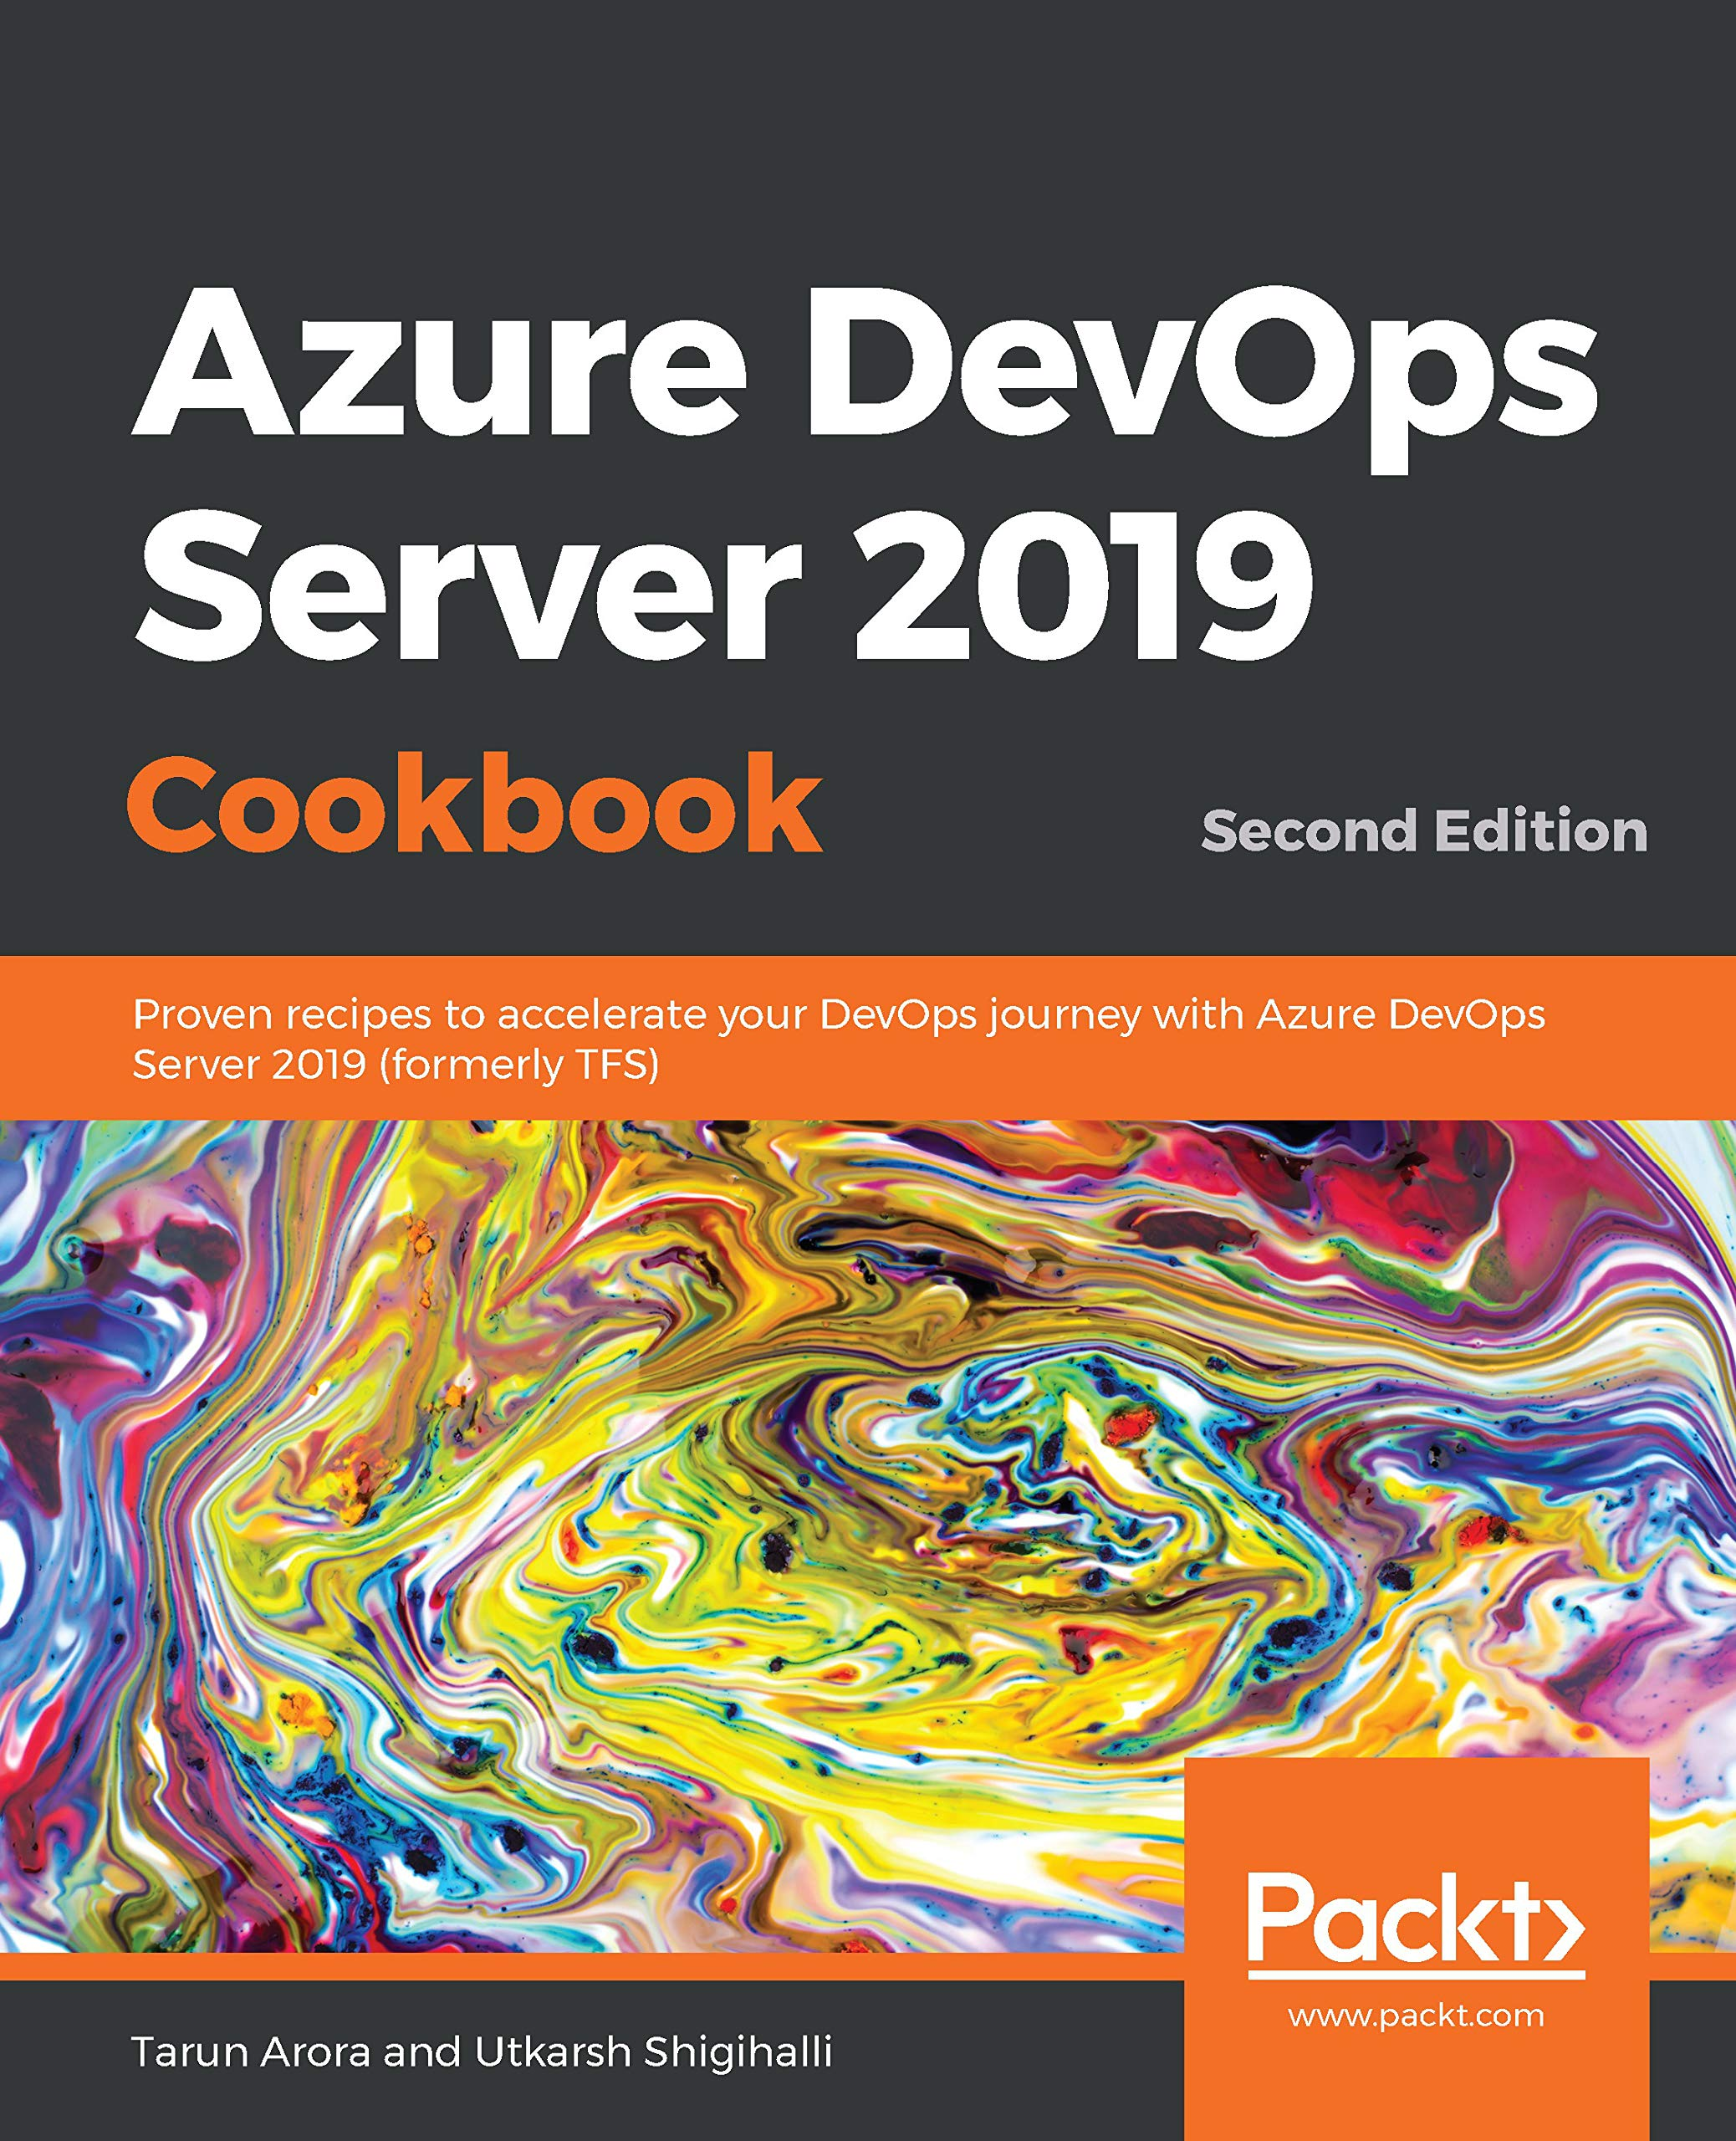 Azure DevOps Server 2019 Cookbook: Proven recipes to accelerate your DevOps journey with Azure DevOps Server 2019 (formerly TFS) 2nd Edition (English Edition)